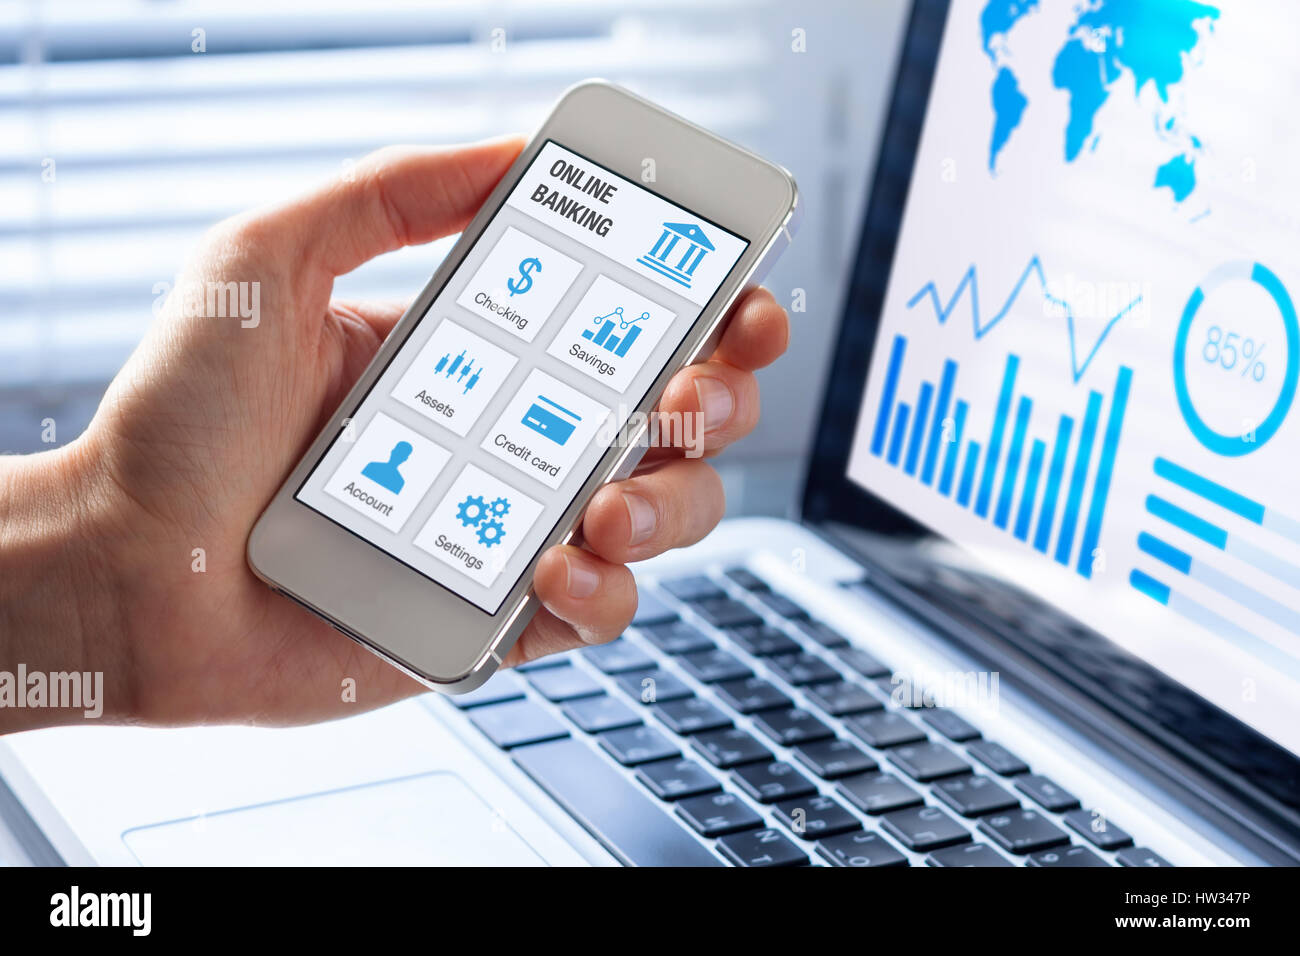 3e4683d5112 Online banking app on a mobile phone screen with a business person using  finance and bank on internet